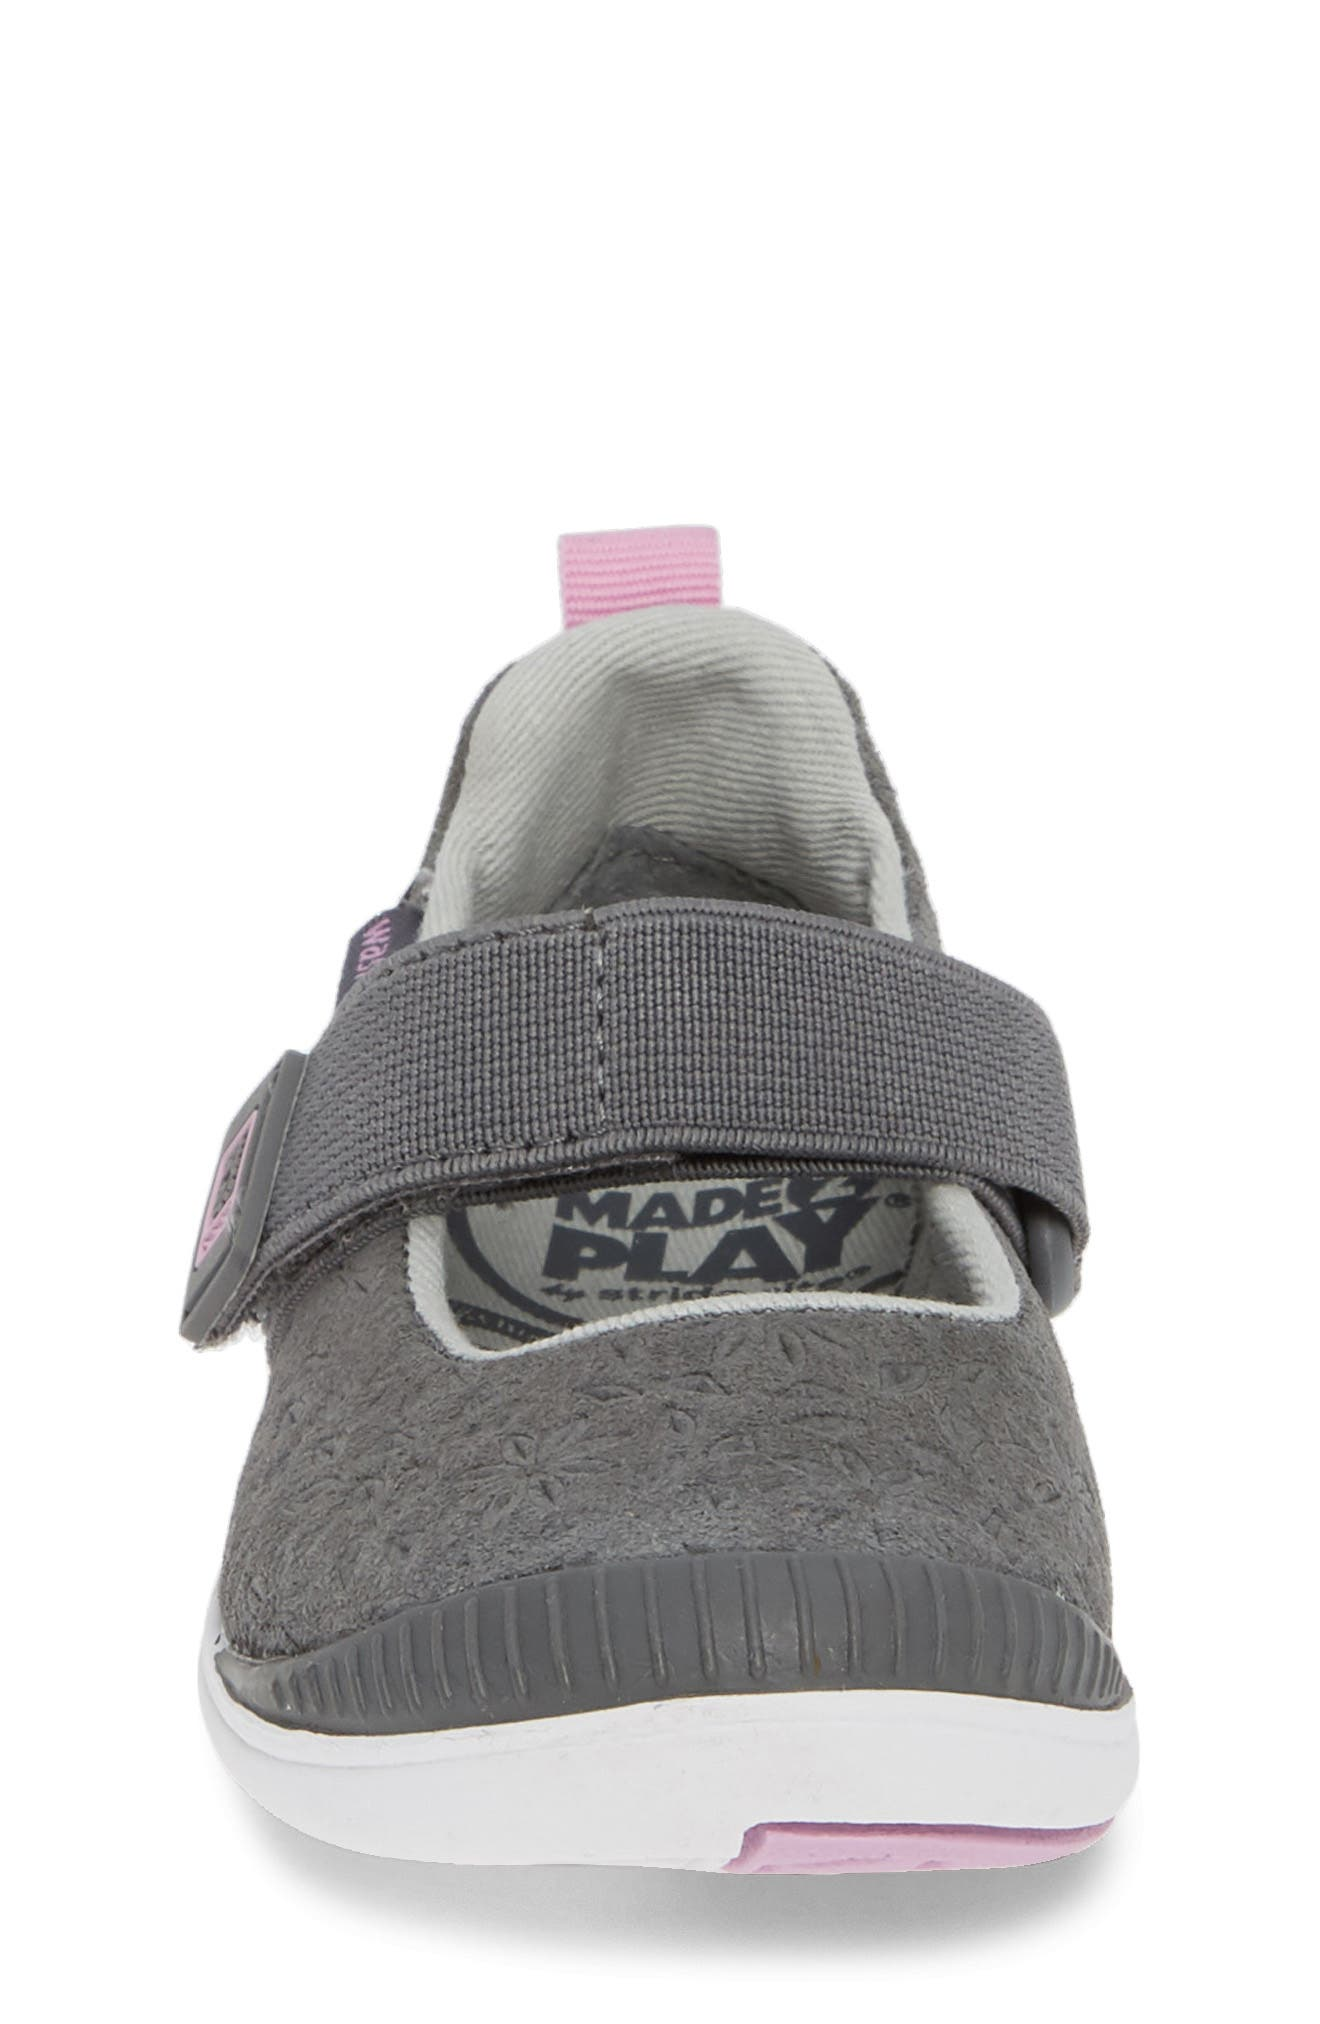 Made2Play<sup>®</sup> Lia Washable Mary Jane Sneaker,                             Alternate thumbnail 4, color,                             GREY